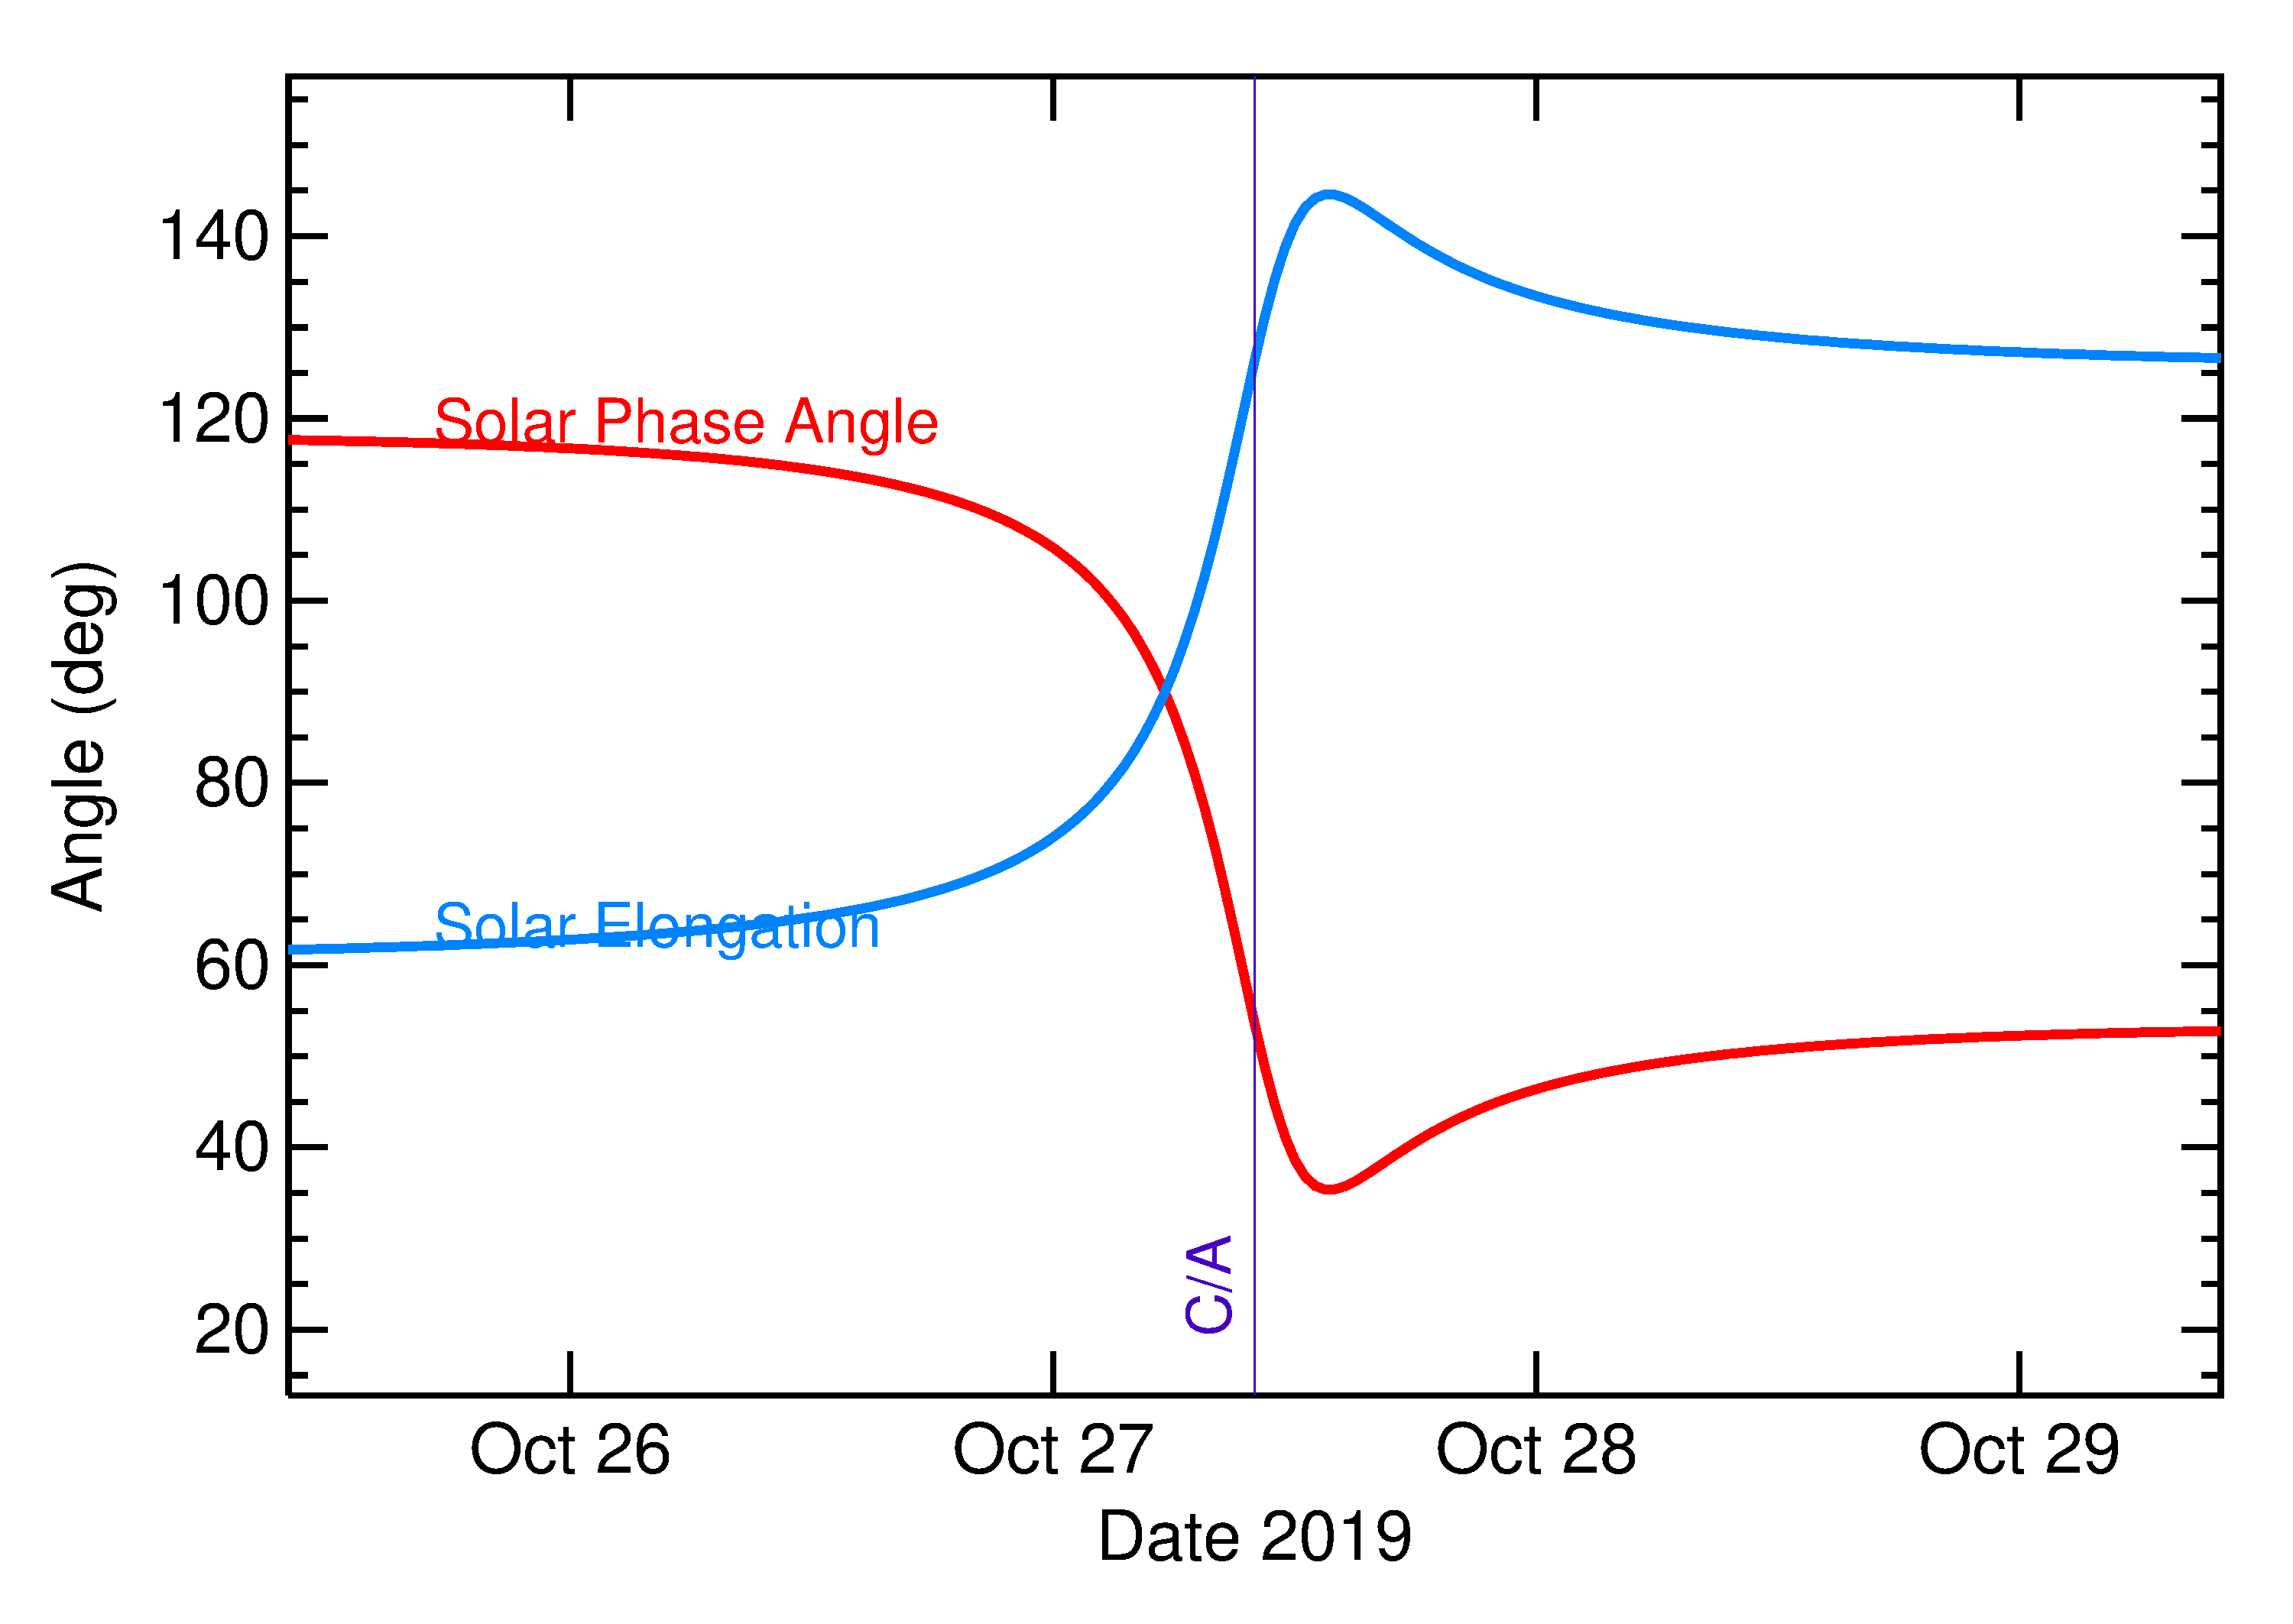 Solar Elongation and Solar Phase Angle of 2019 UD10 in the days around closest approach